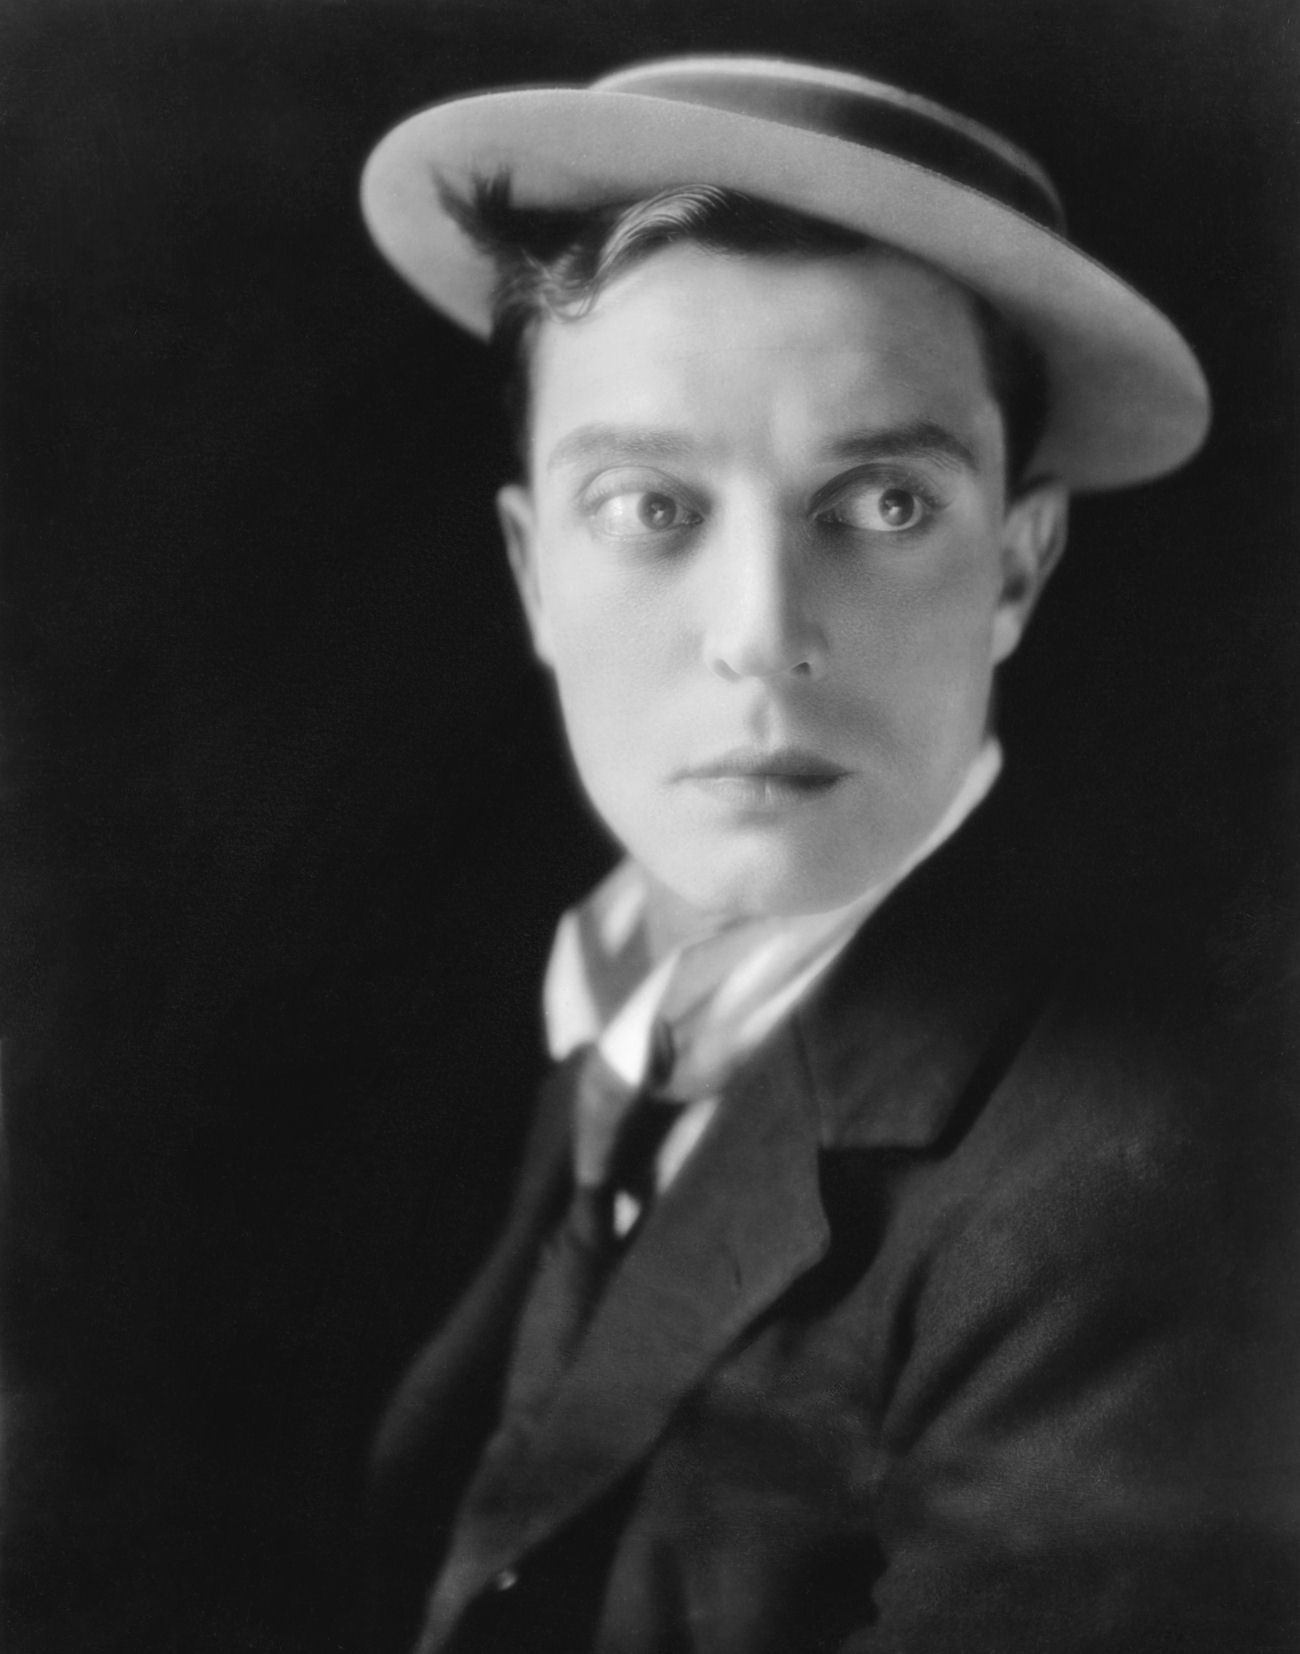 Buster Keaton - Joseph Frank Keaton Junior | 1895 - 1966 | Actor, director, producer, writer, stunt performer | Photograph